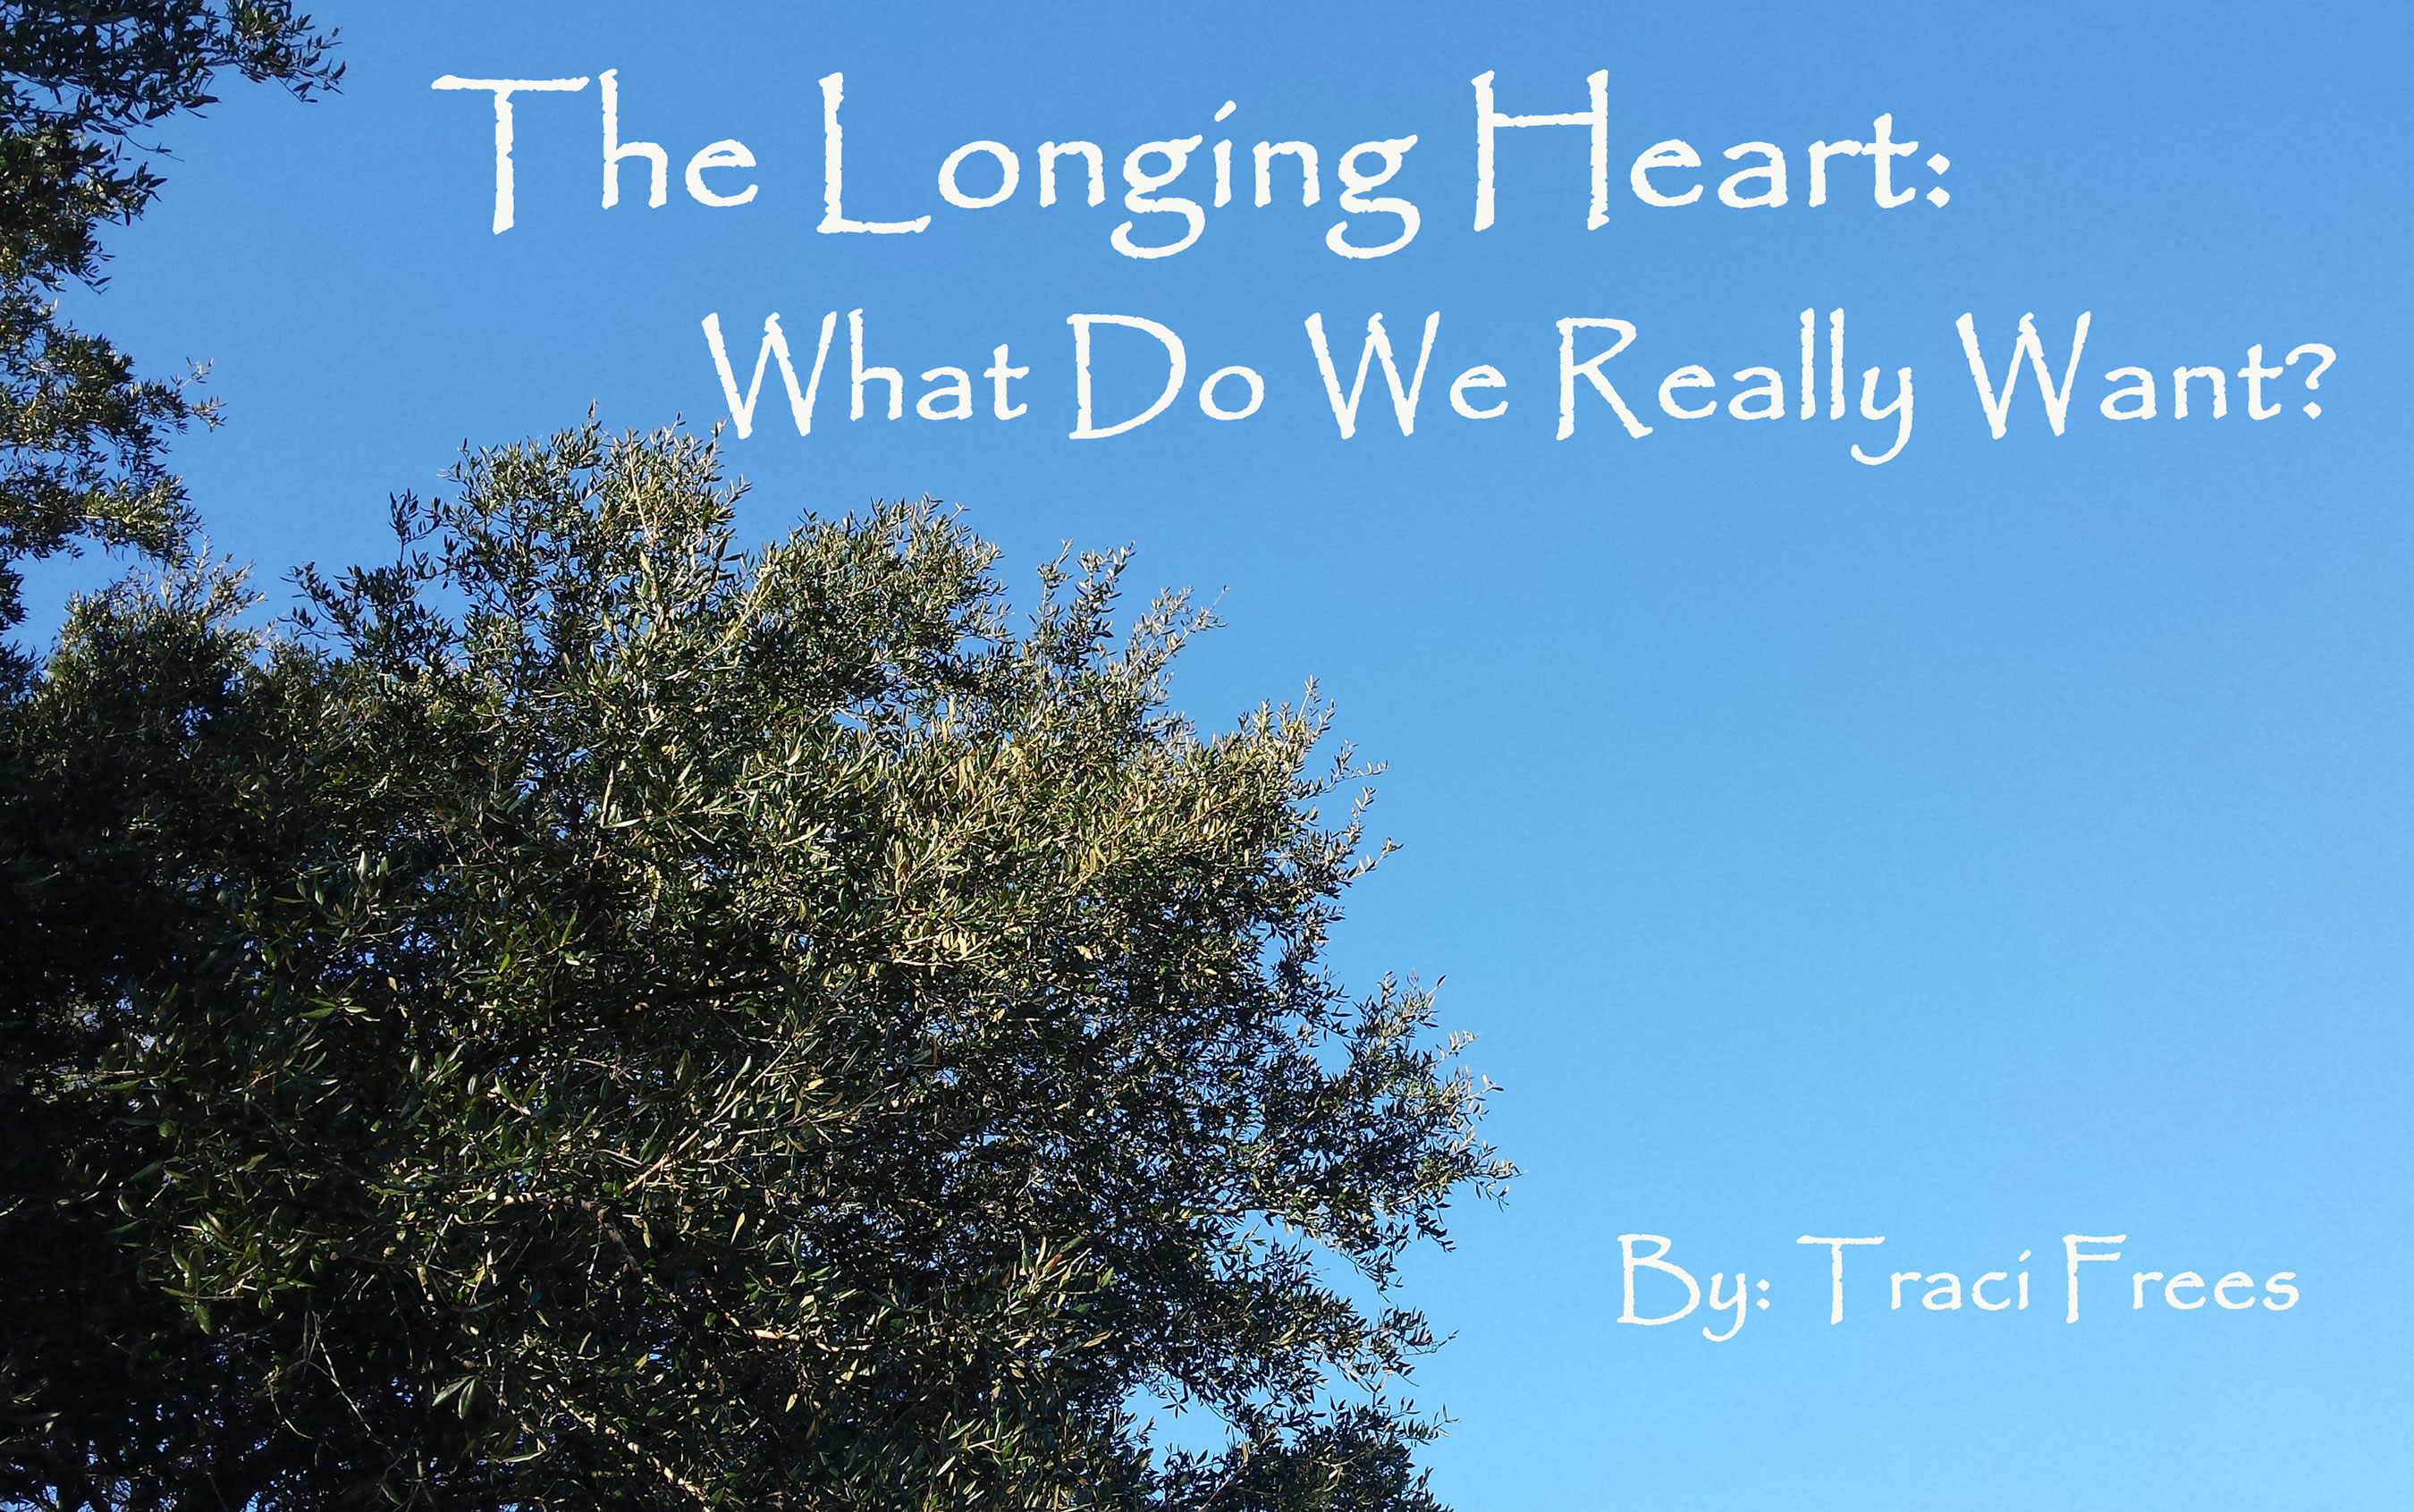 The Longing Heart: What Do We Really Want eBook Link